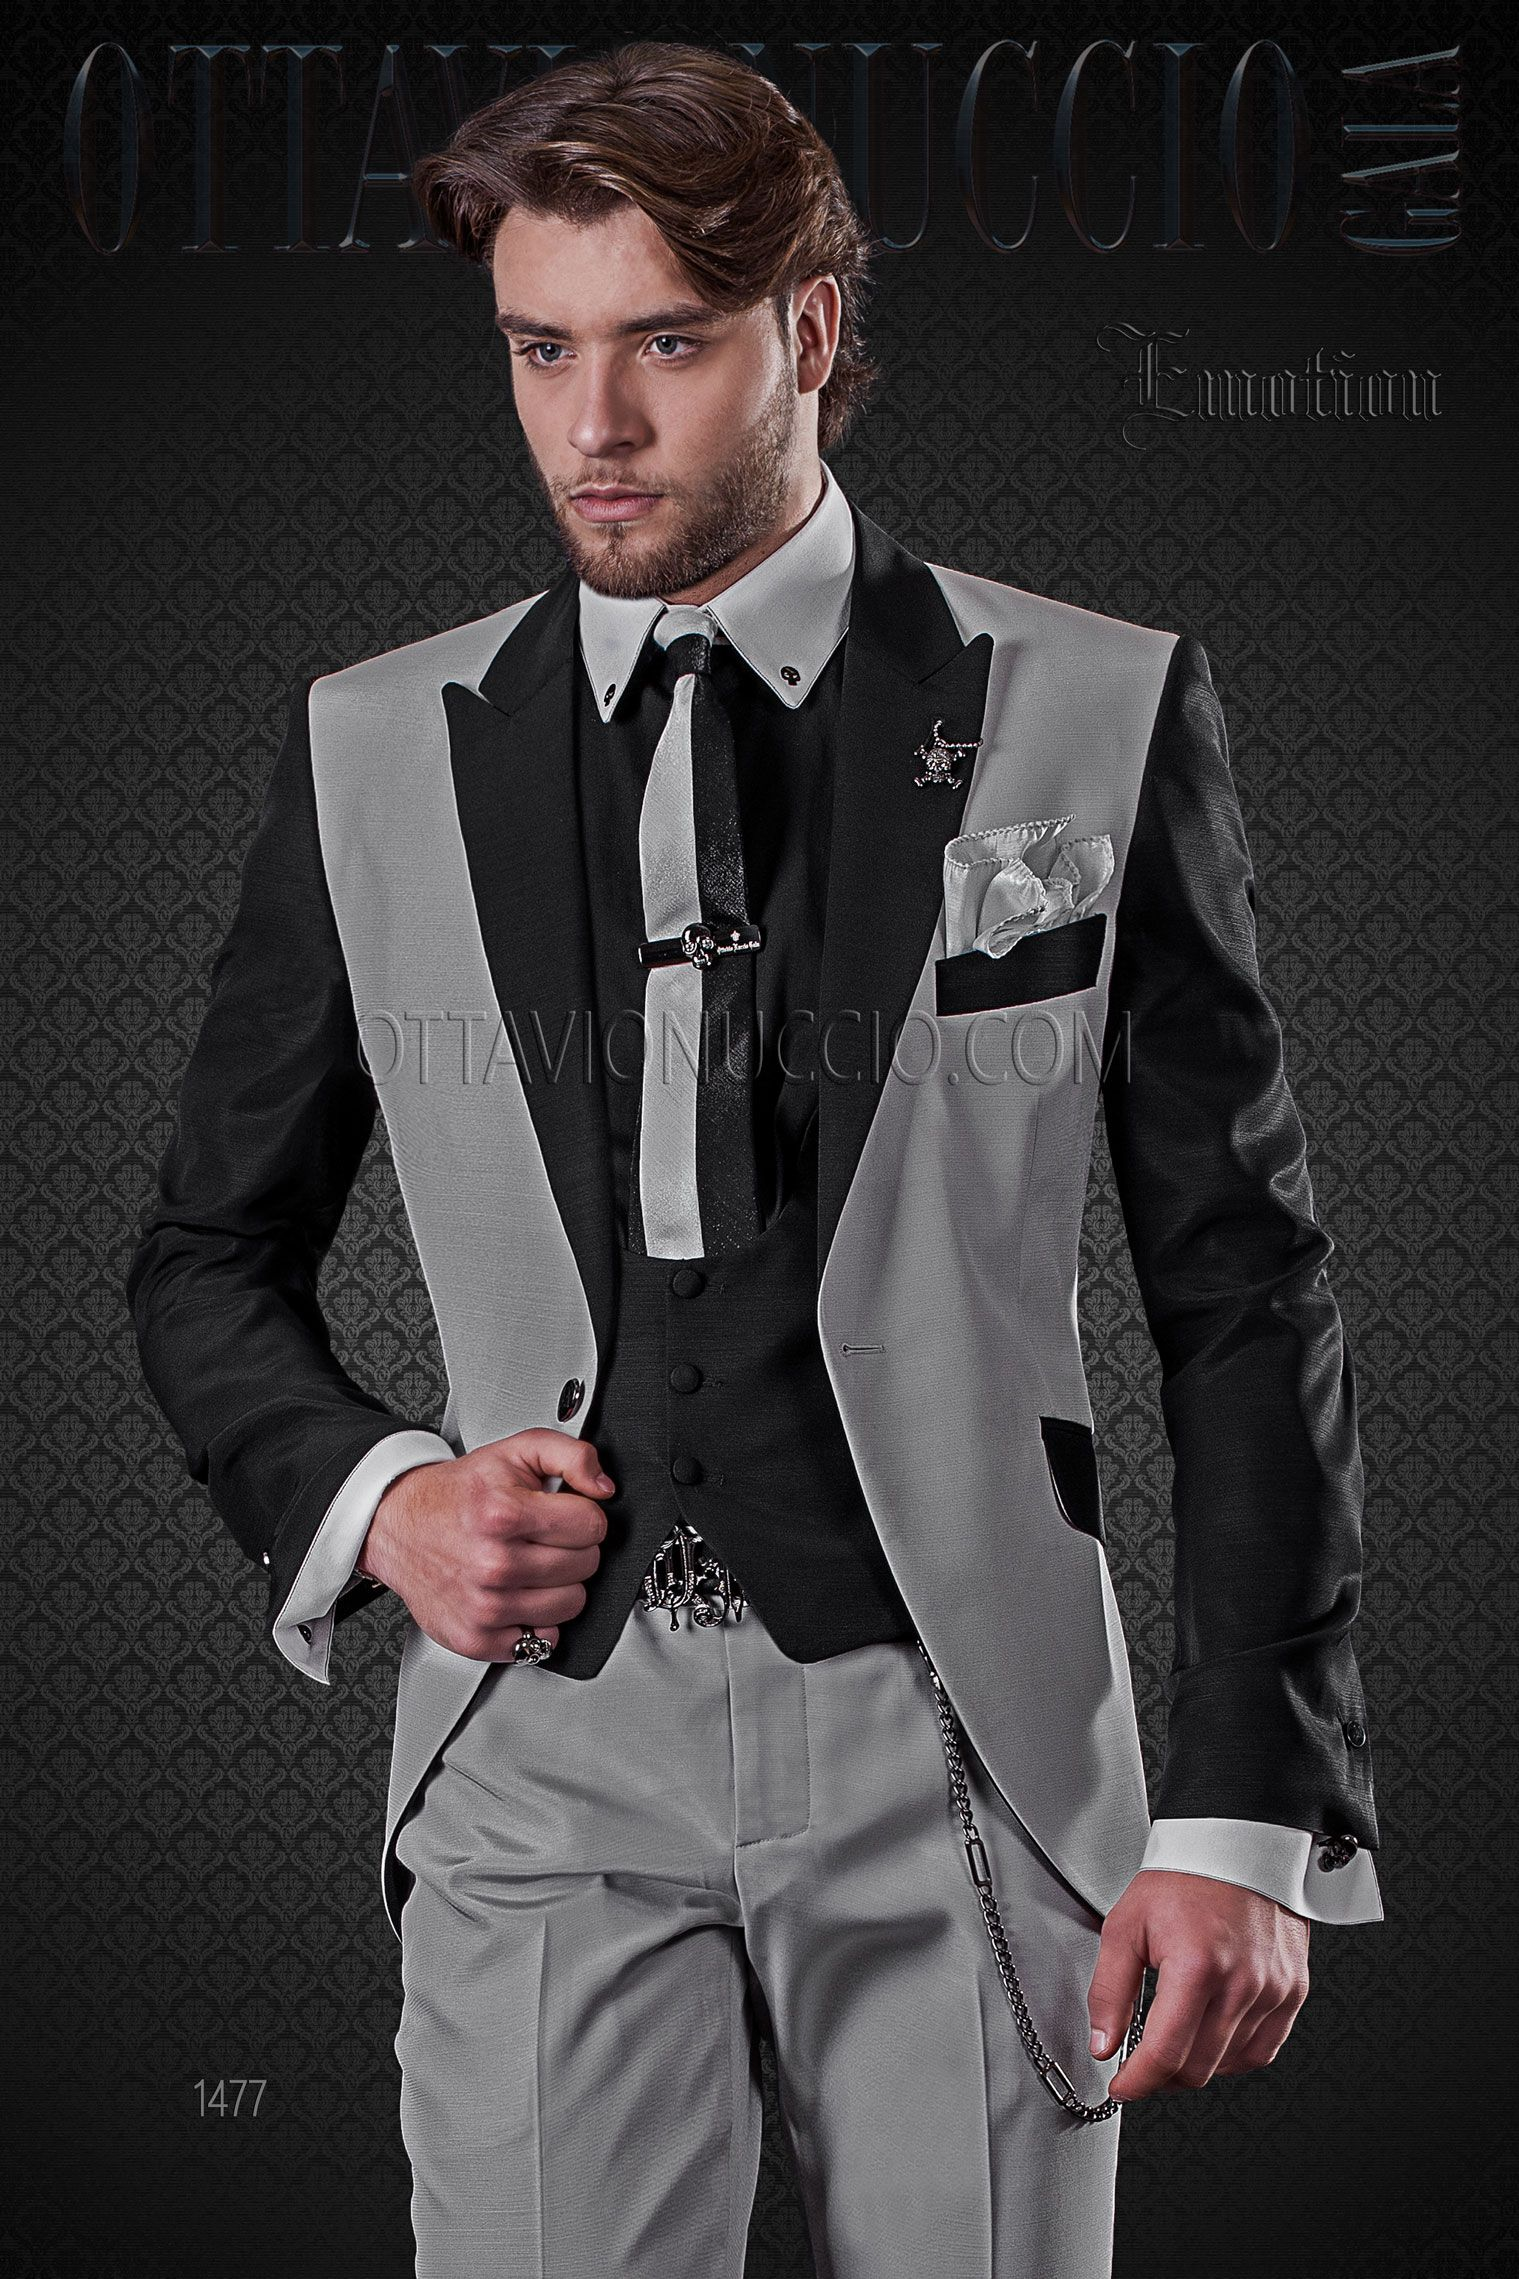 Pearl grey and black patchwork wedding suit for groom #groom ...